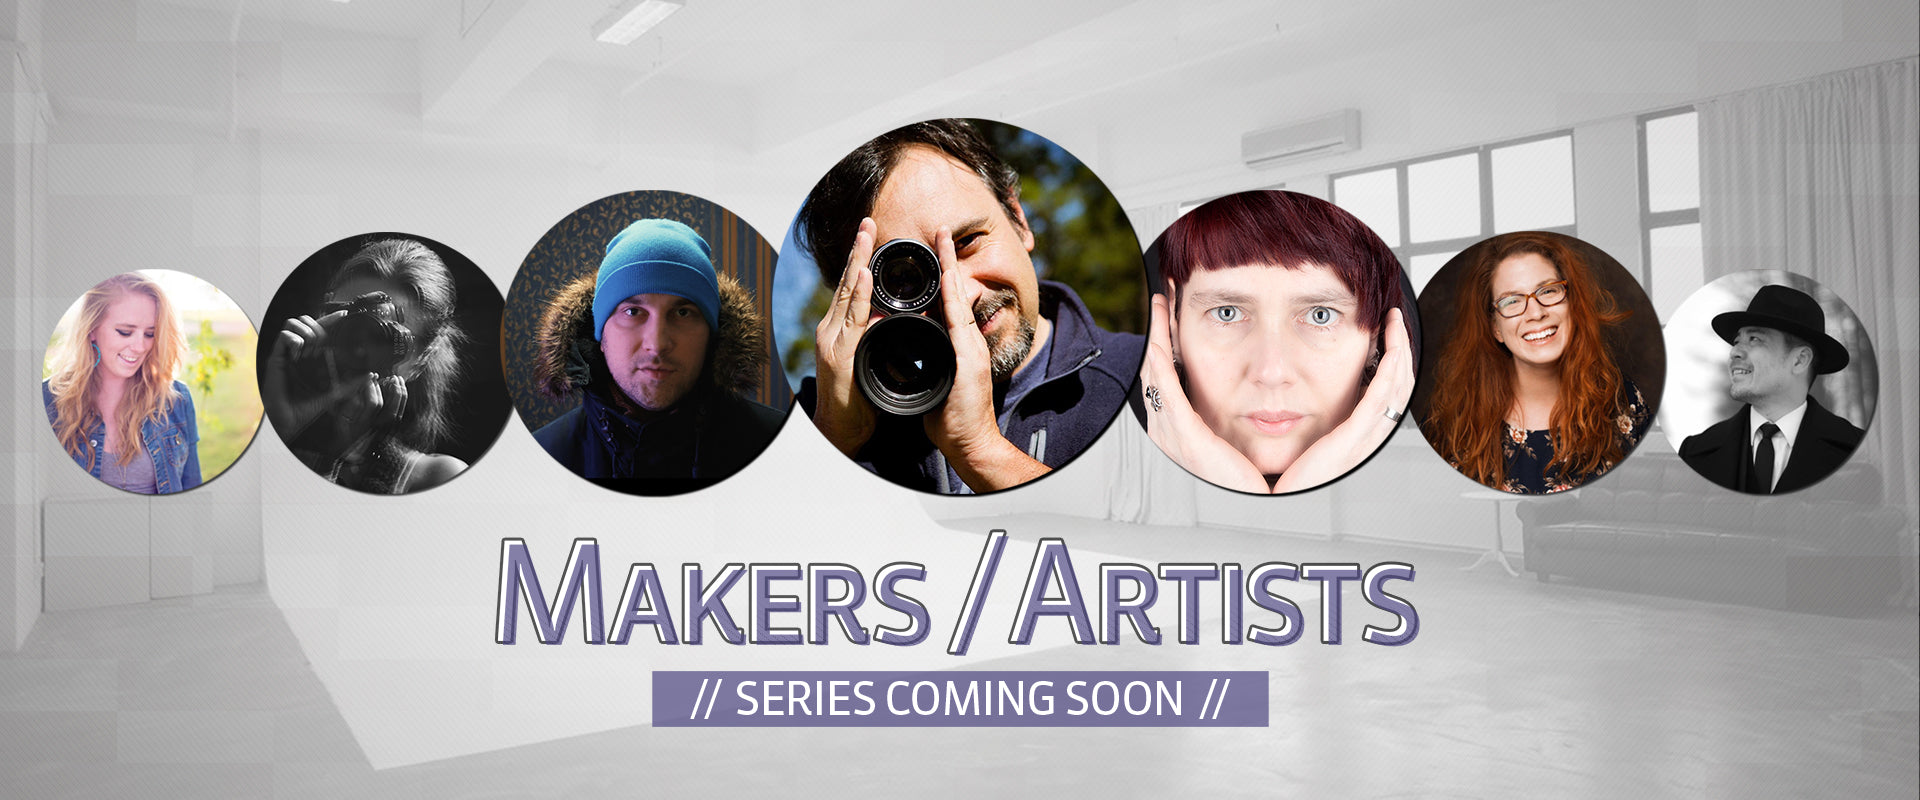 Portraits in bubbles Makers Artists series coming soon Lensbaby Stephanie DeFranco Lesnbaby Makers